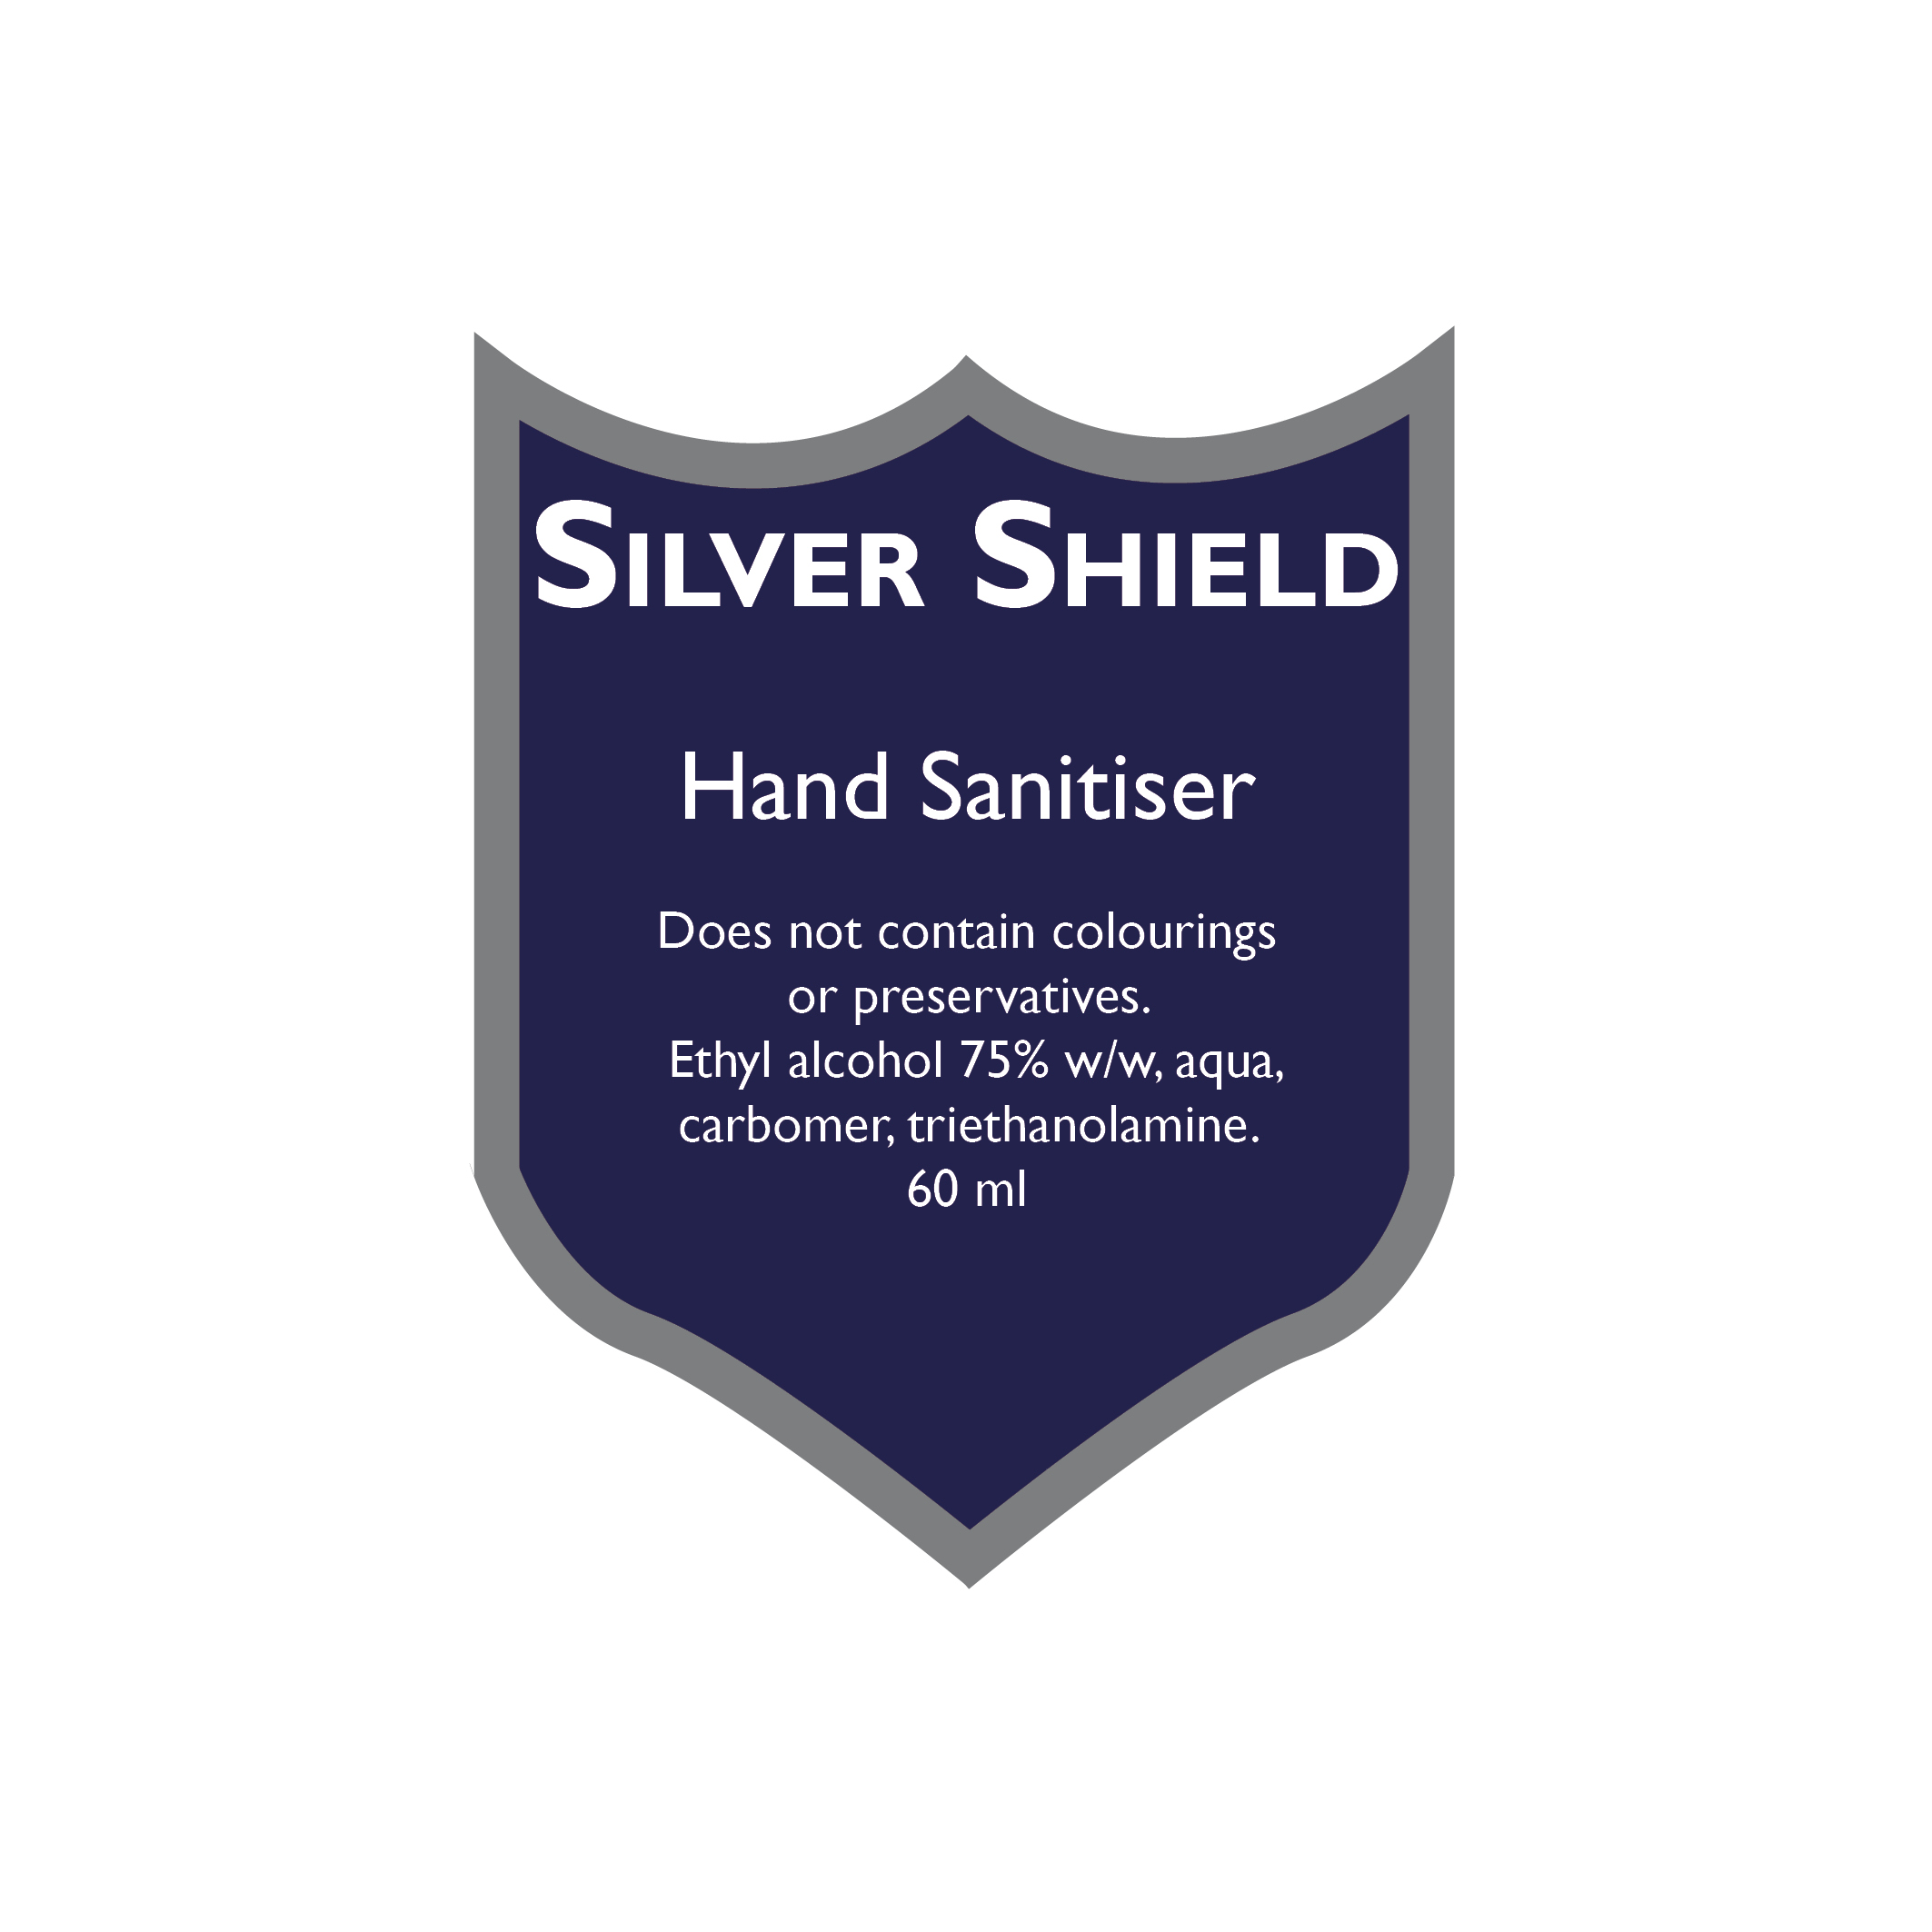 Silver ShieldSilver Shield Hand Sanitiser 60ml available from New Medical supplier of medical consumables, devices and accessories